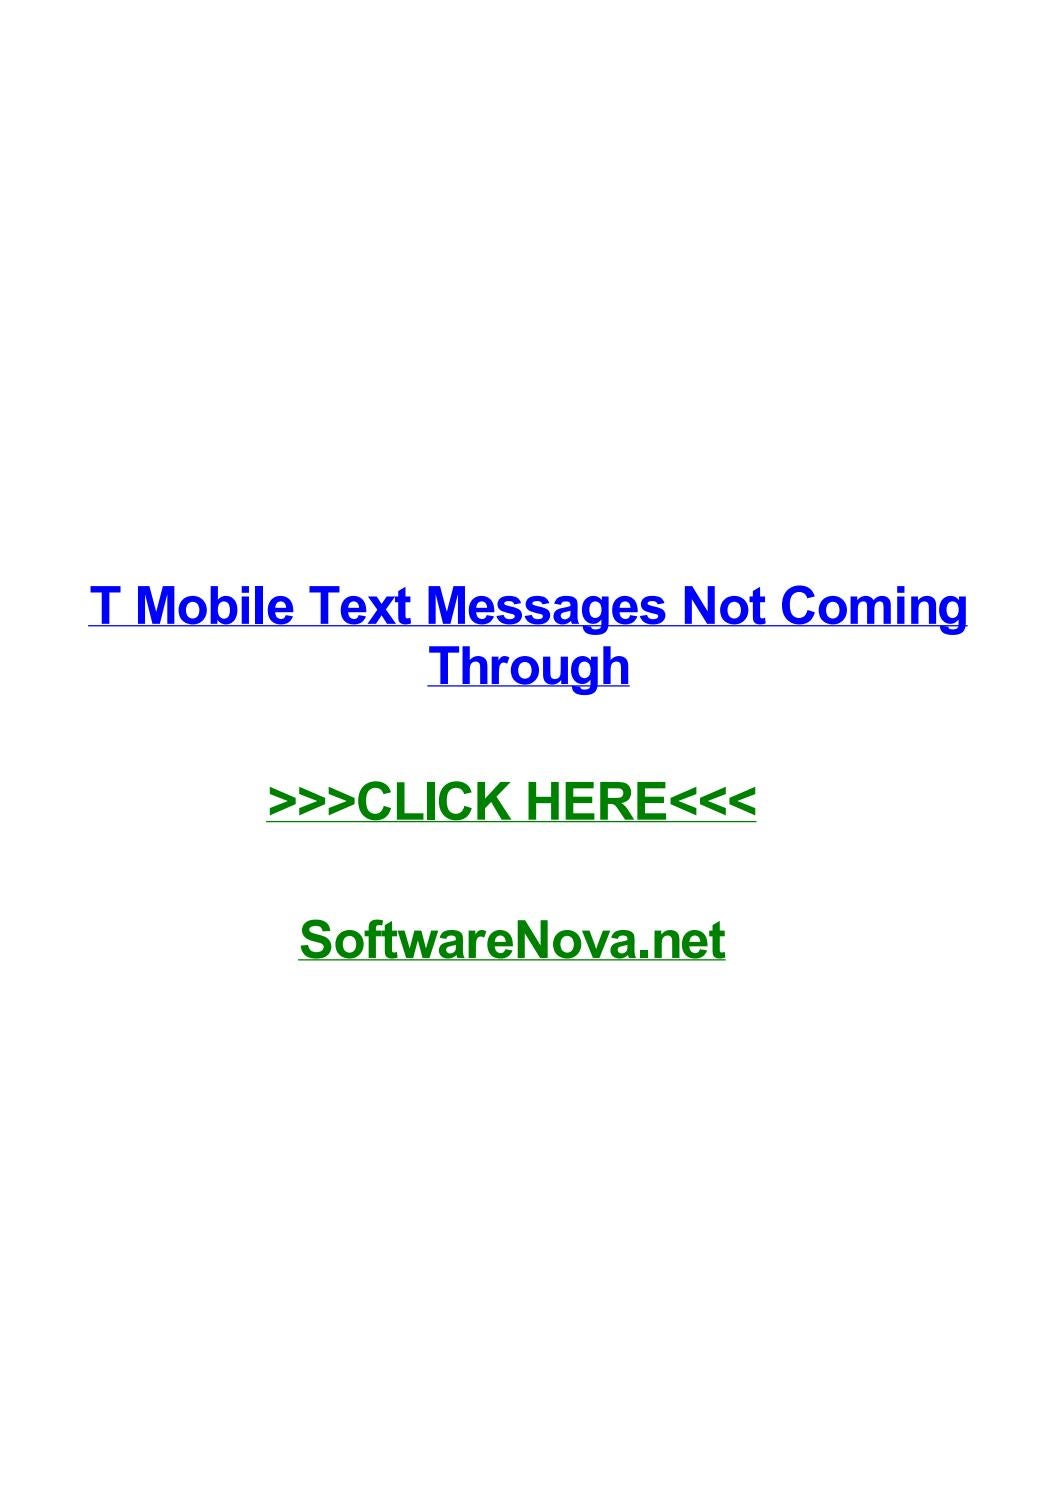 T mobile text messages not coming through by terrytkvoh - issuu